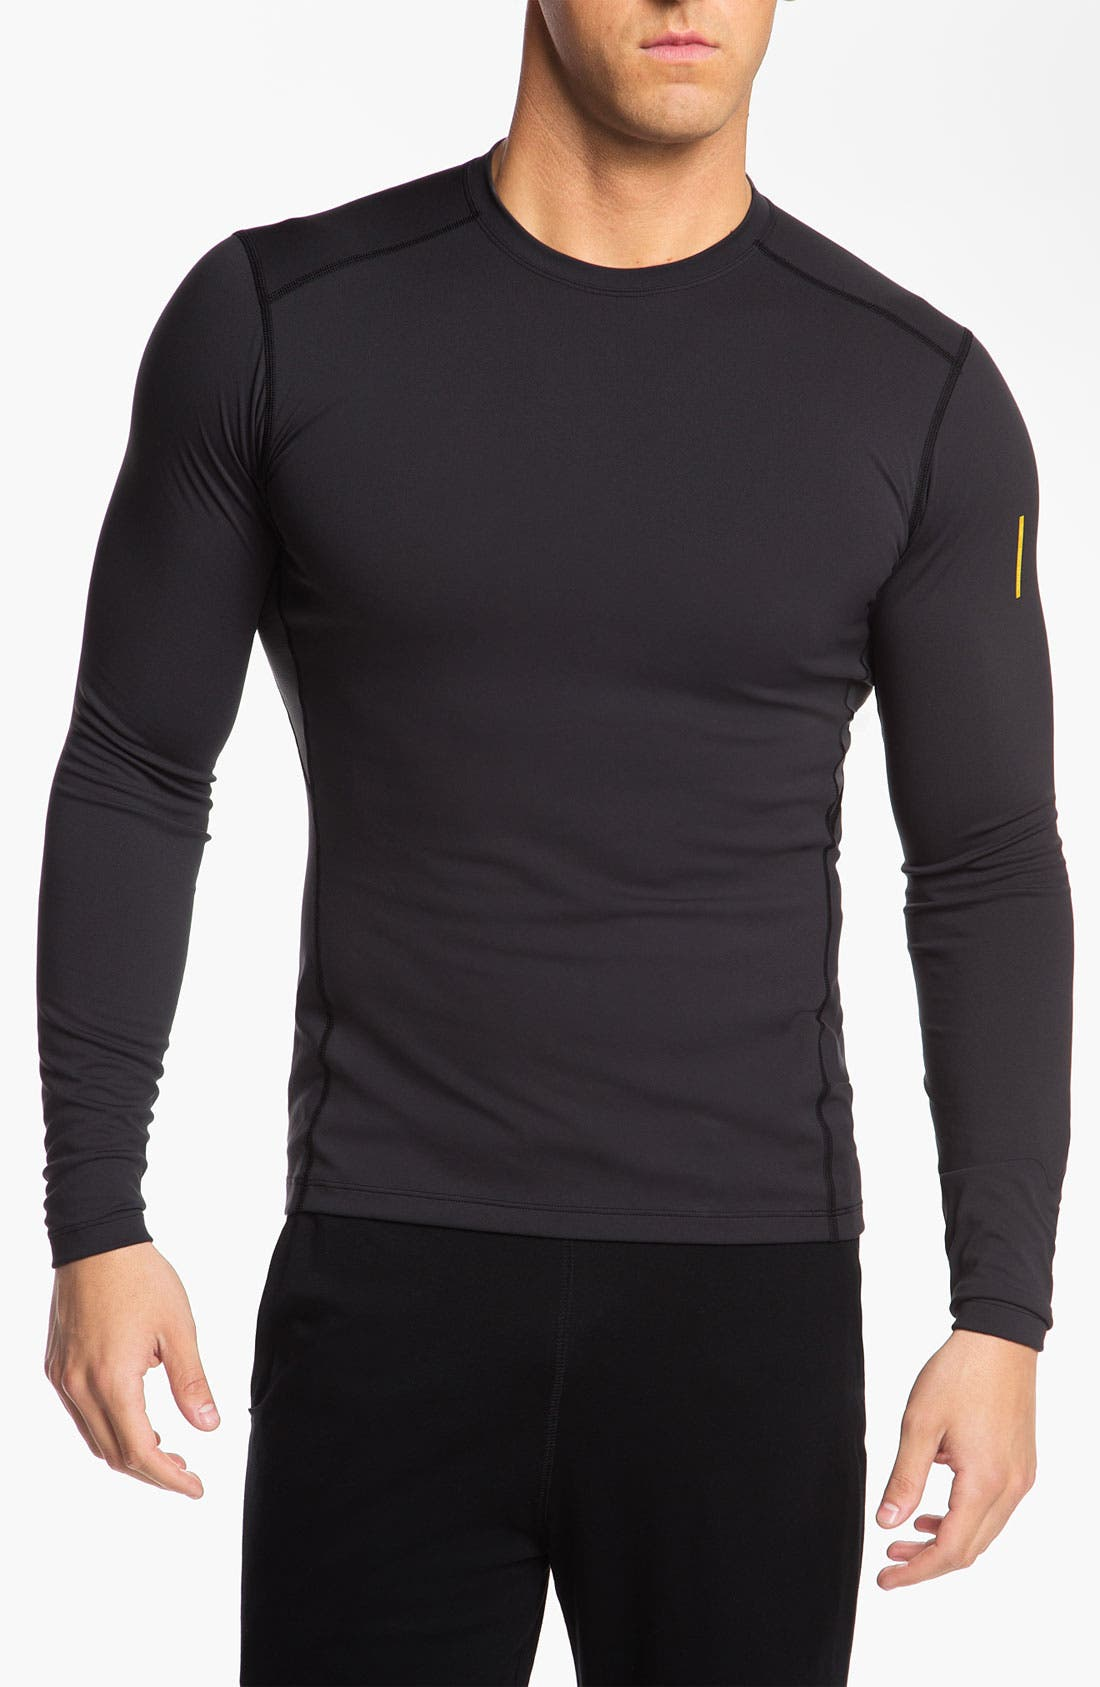 Alternate Image 1 Selected - Arc'teryx 'Phase SL' Long Sleeve T-Shirt (Online Only)